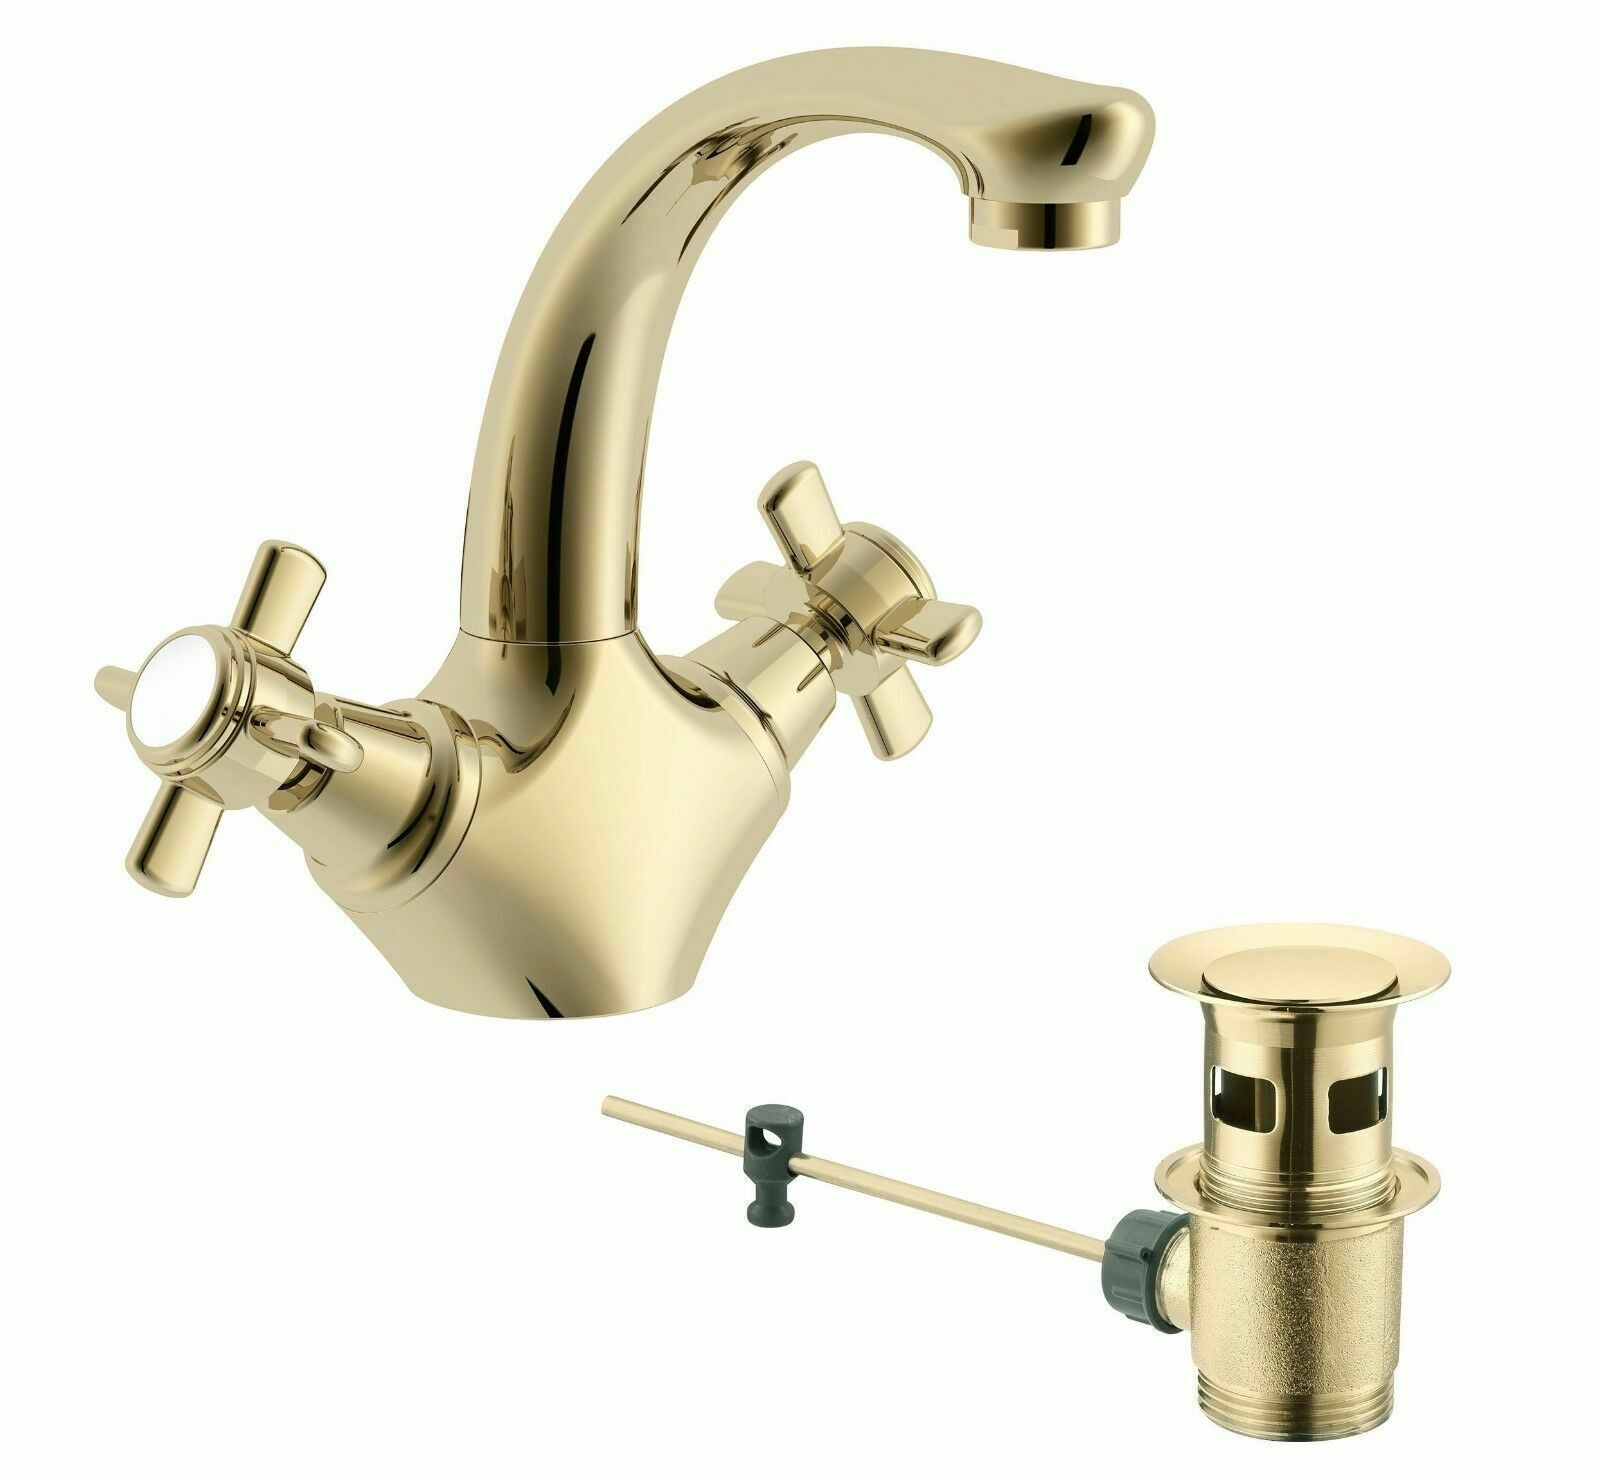 Cooke & Lewis Classic or Monobloc Bassin Mitigeur + Pop Up Waste